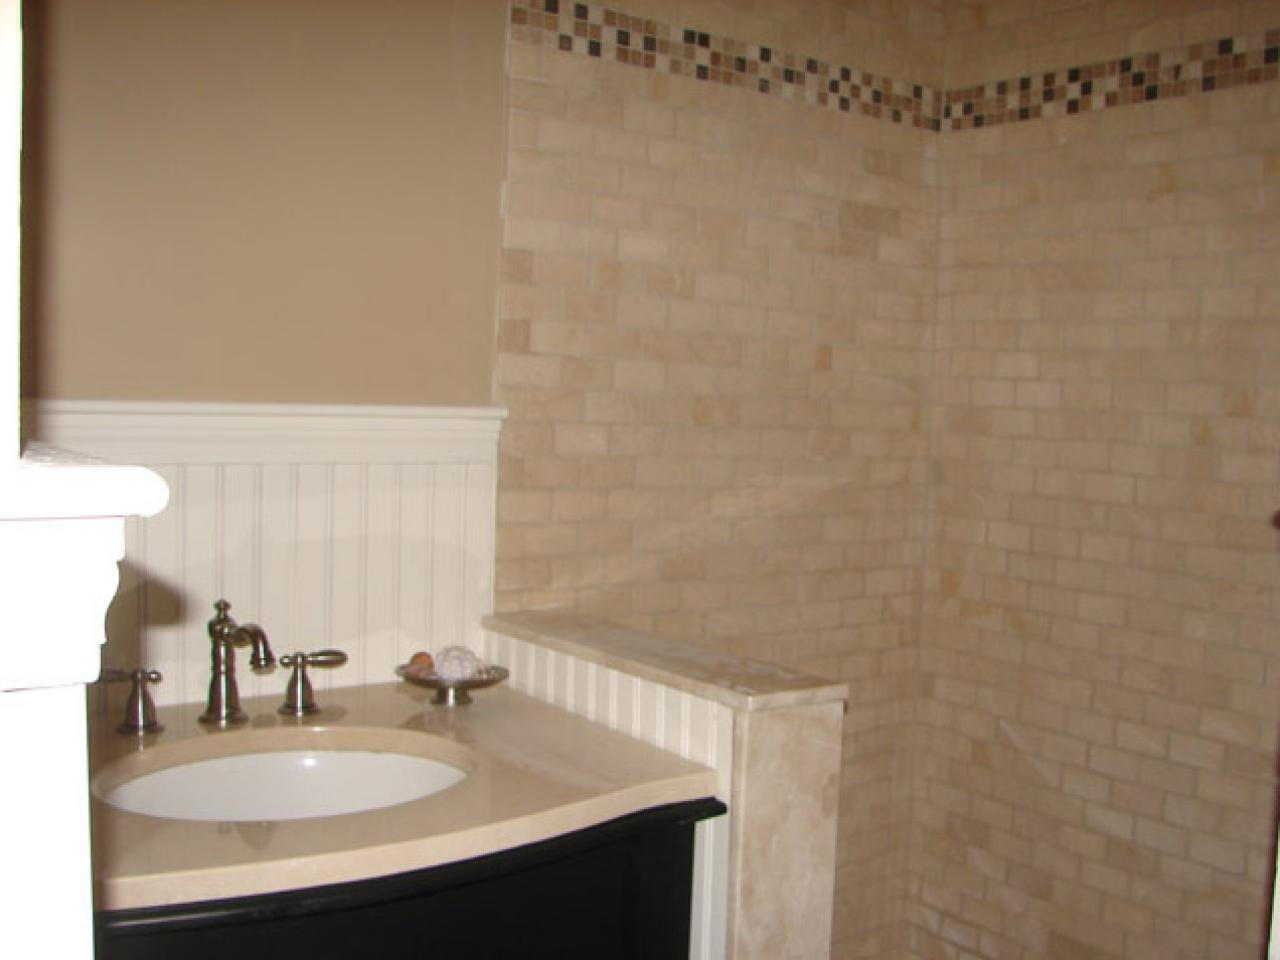 How To Install Tile In A Bathroom Shower HGTV - Bathroom shower